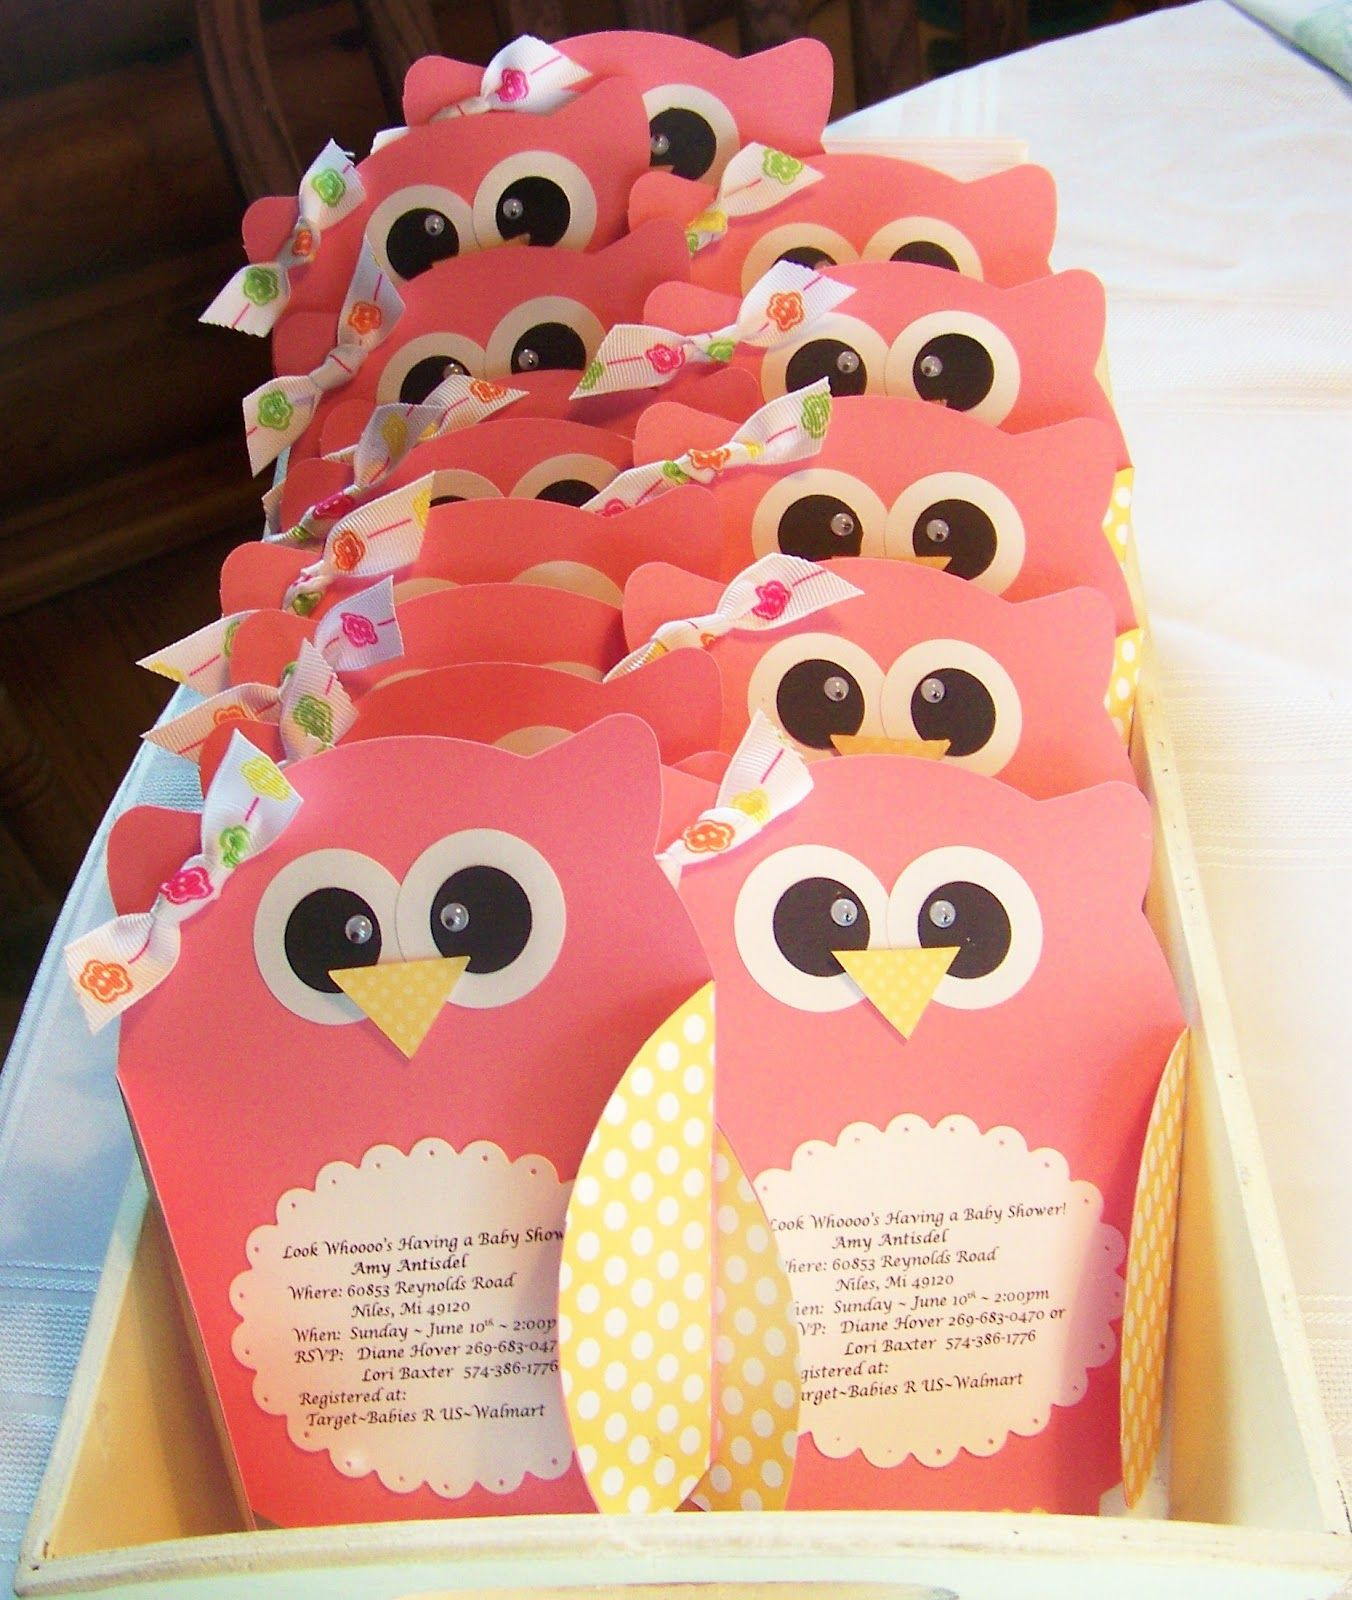 Fancy diy owl baby shower invitations crest resume ideas little owl invites shower invitations nest and owl filmwisefo